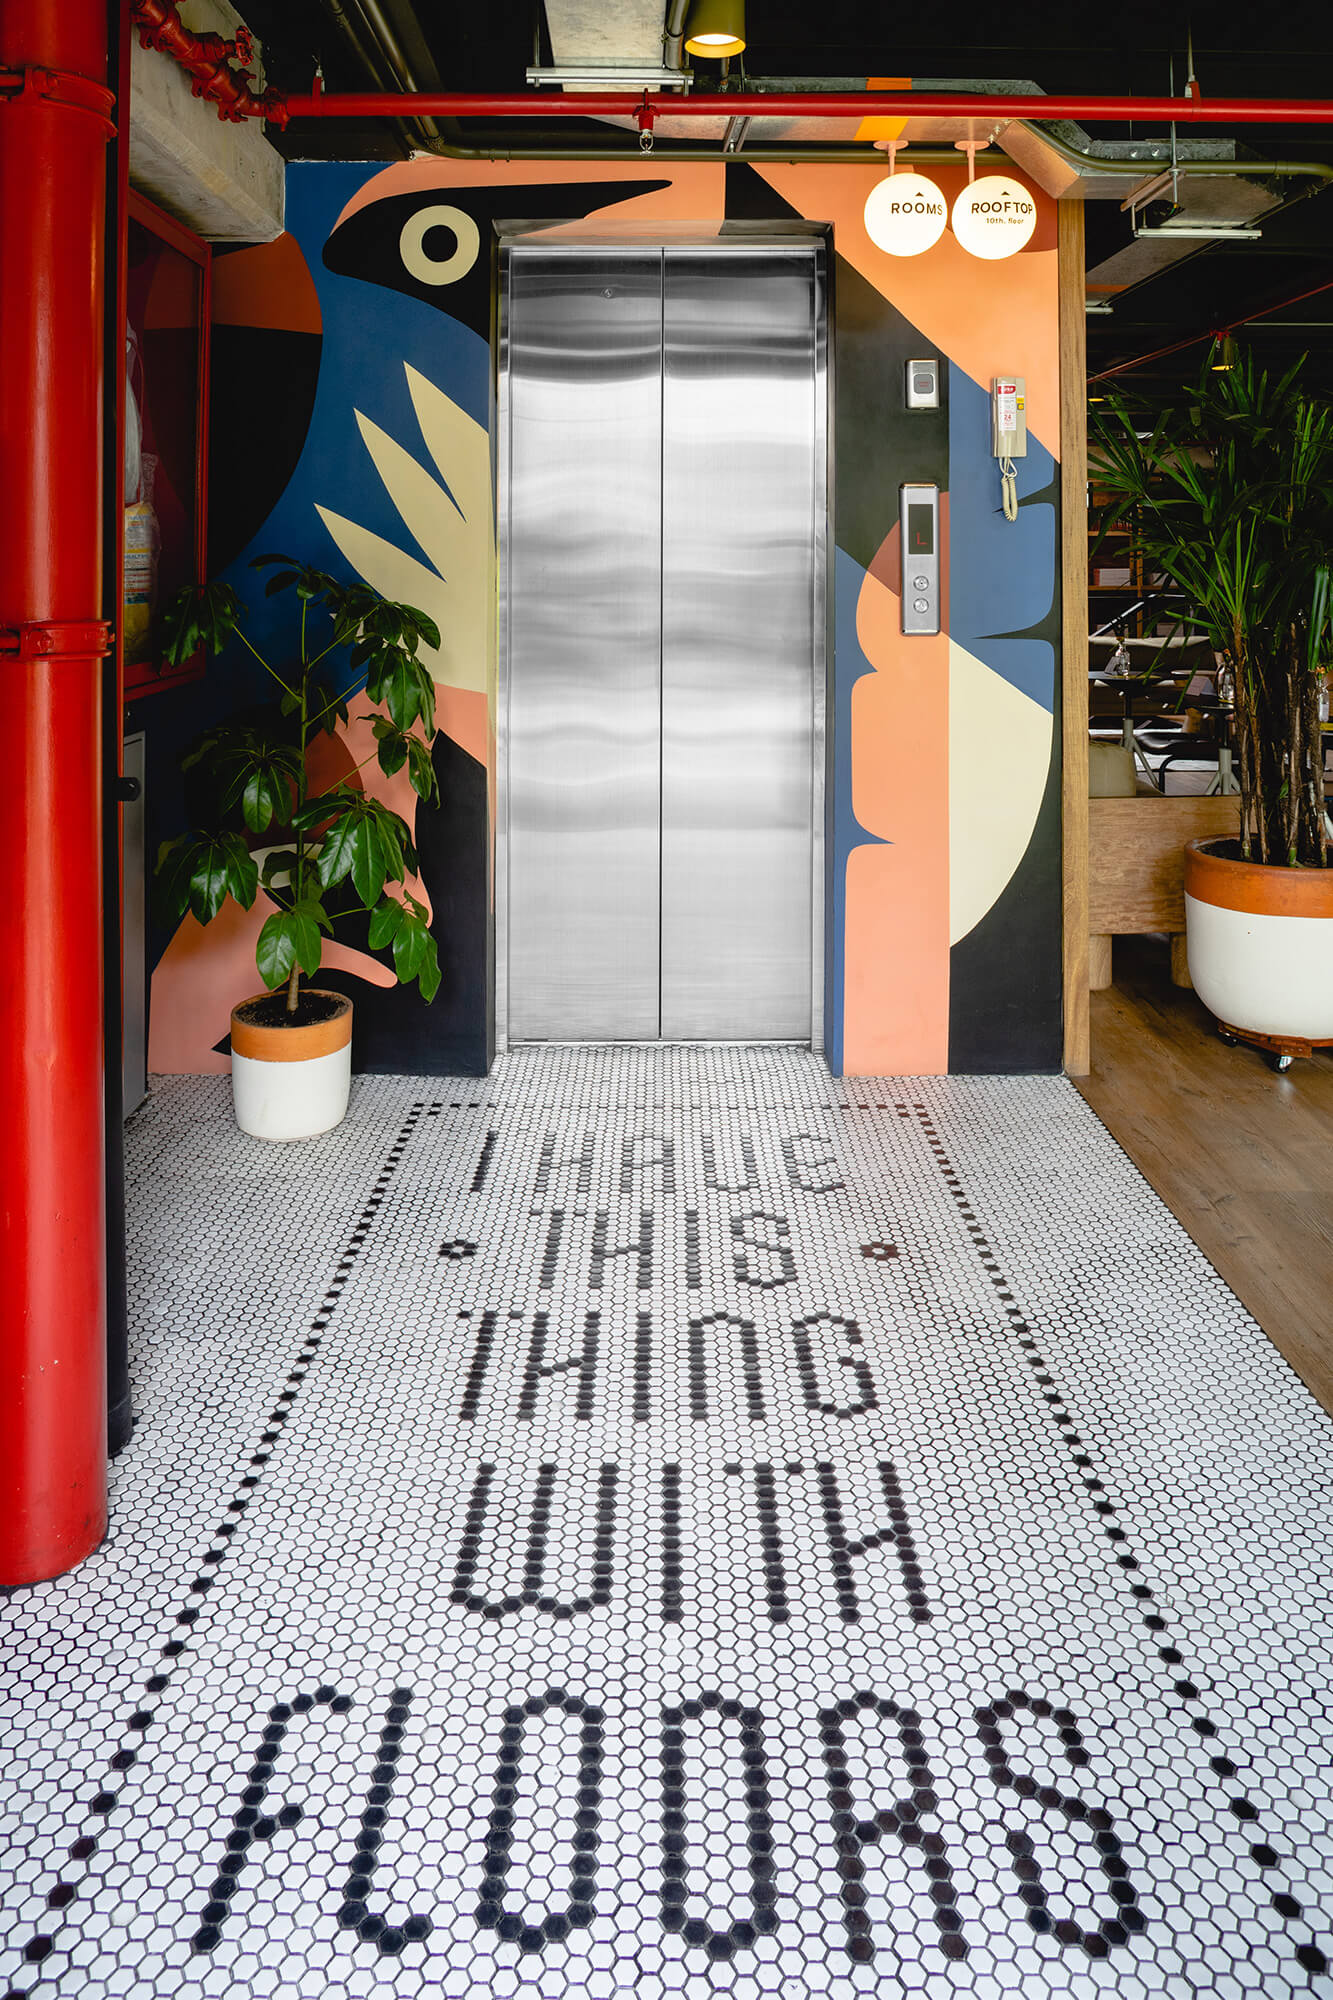 Mosaic flooring and murals around the elevator | A5 Arquitectura |  Medellí, Colombia | STIRworld